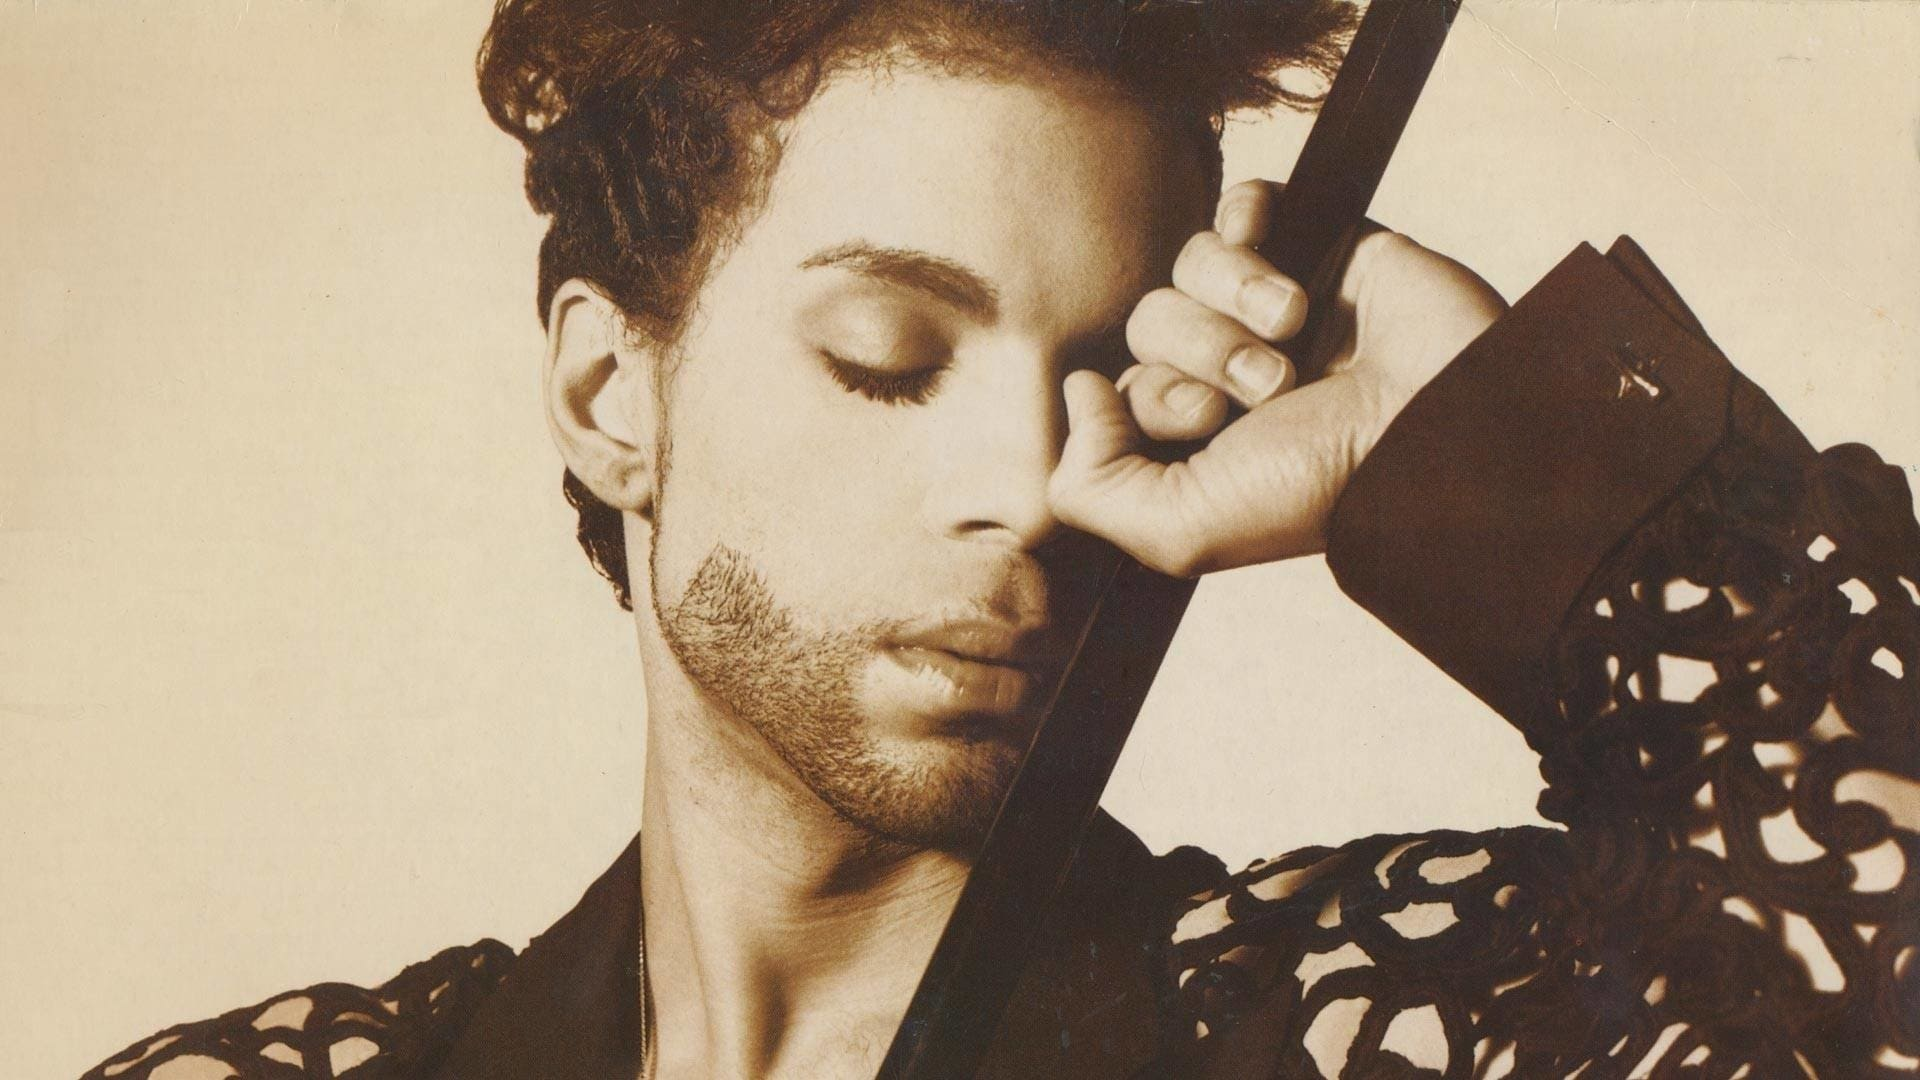 Pictures of the singer prince